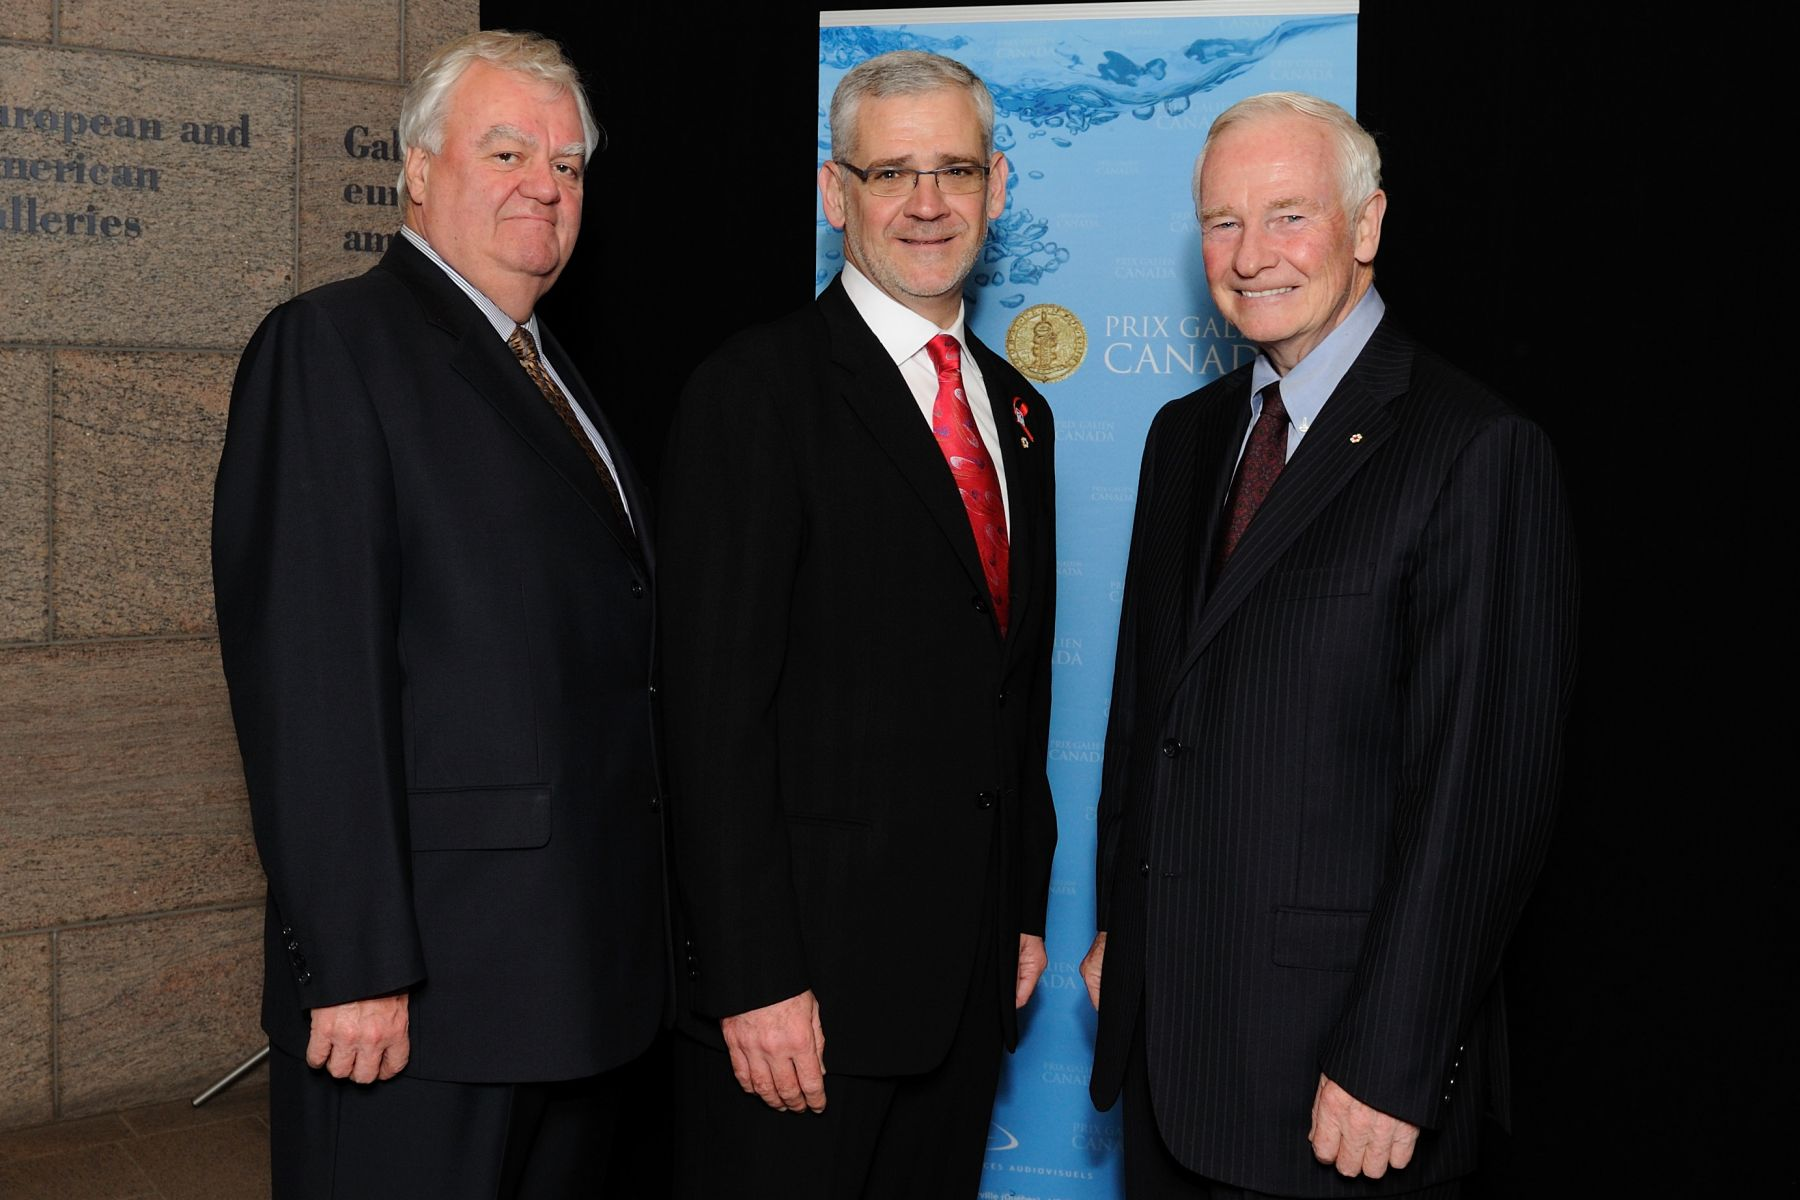 His Excellency and Dr. Gagné with Dr. Julio Montaner, laureate of the Prix Galien Research.